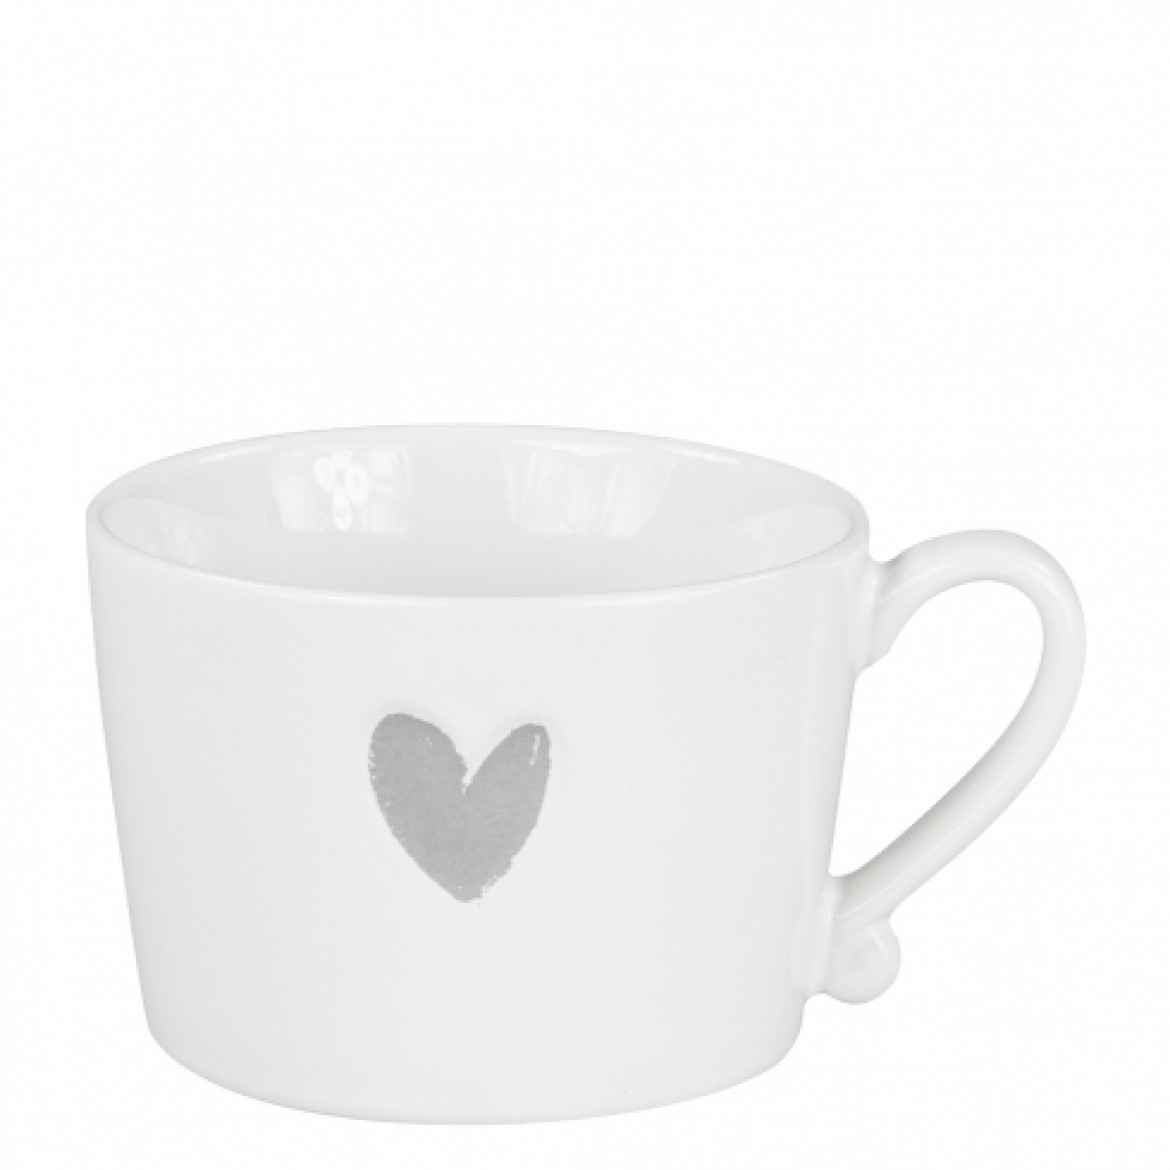 Tasse Groß Bastion Collection Tasse Groß Heart Grey Tassen Teller